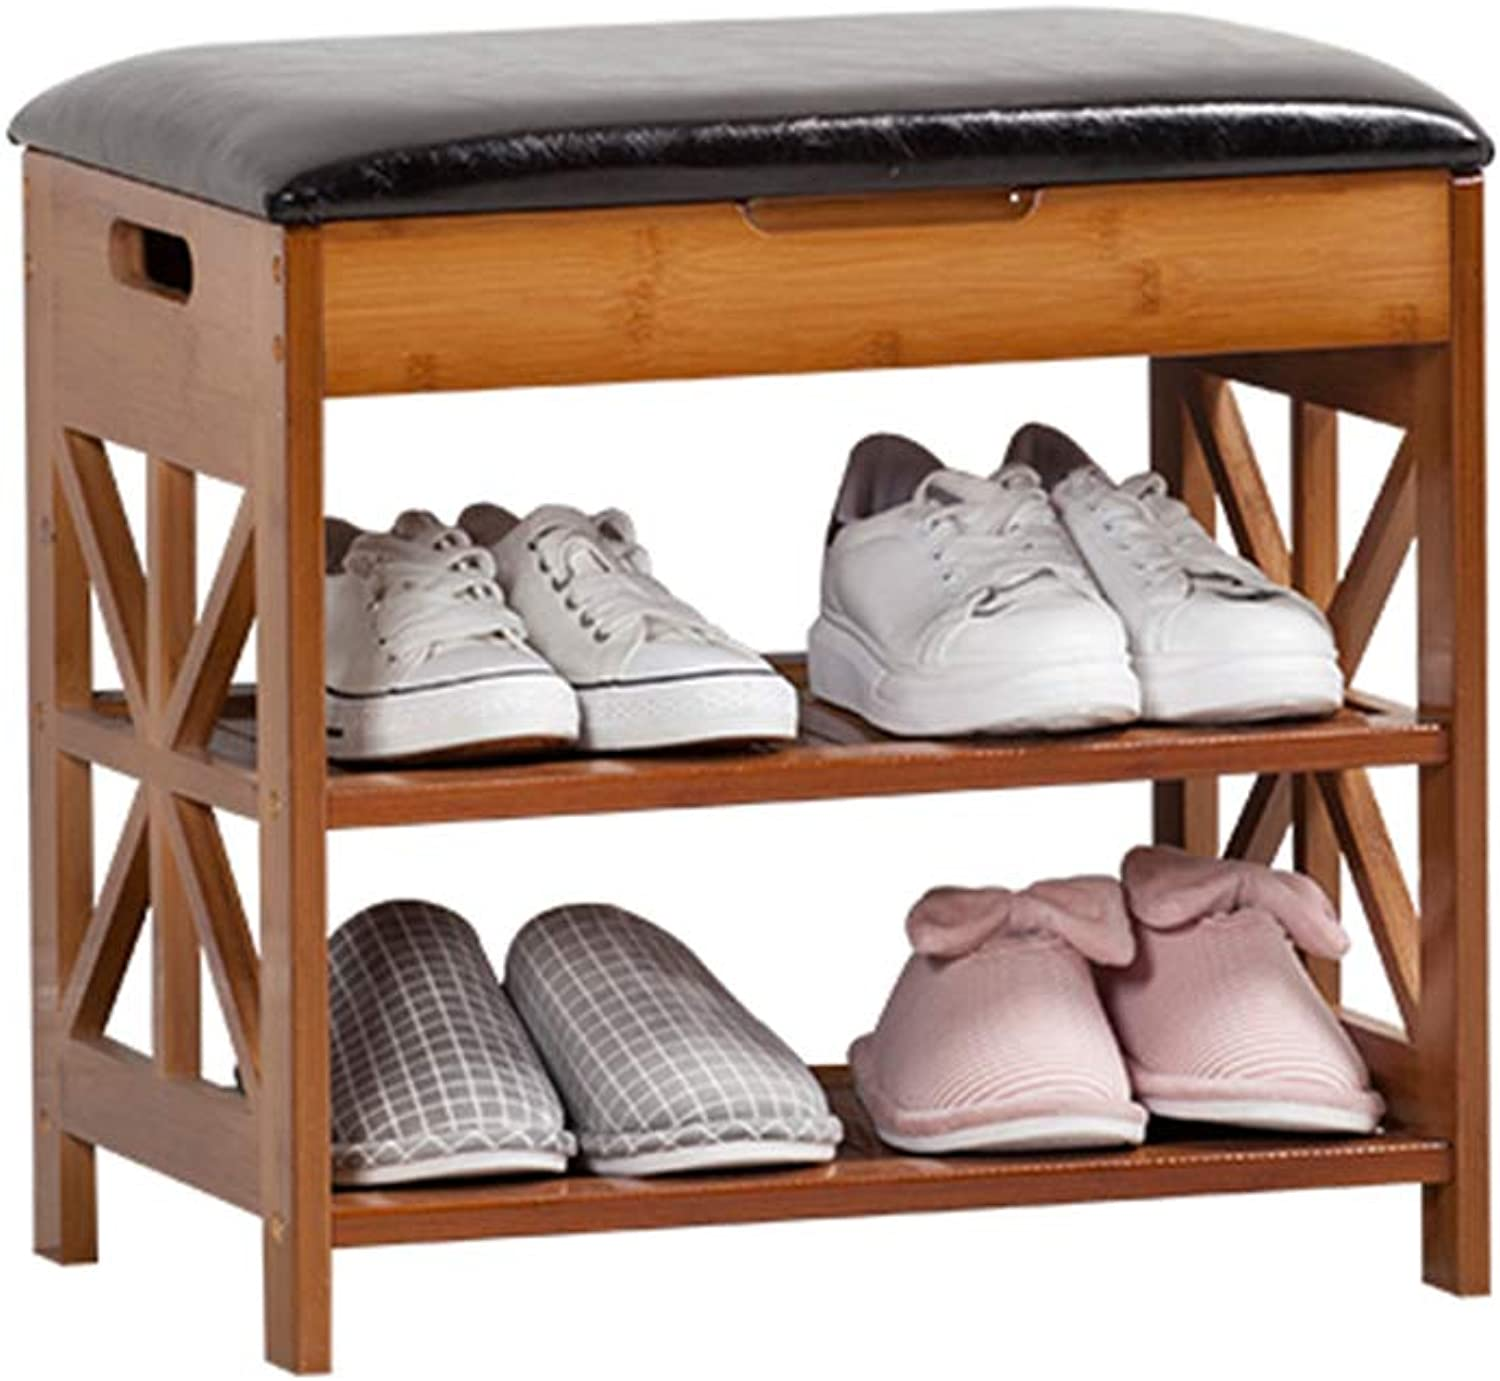 Multi-Layer Practical Space Saving Storage Solid Wood 2-Tiers shoes Bench Storage Hallway shoes Rack with Black PU Seat Cushion Bamboo Flip Cover Change shoes Stool - 3 Sizes for Home & Commercial